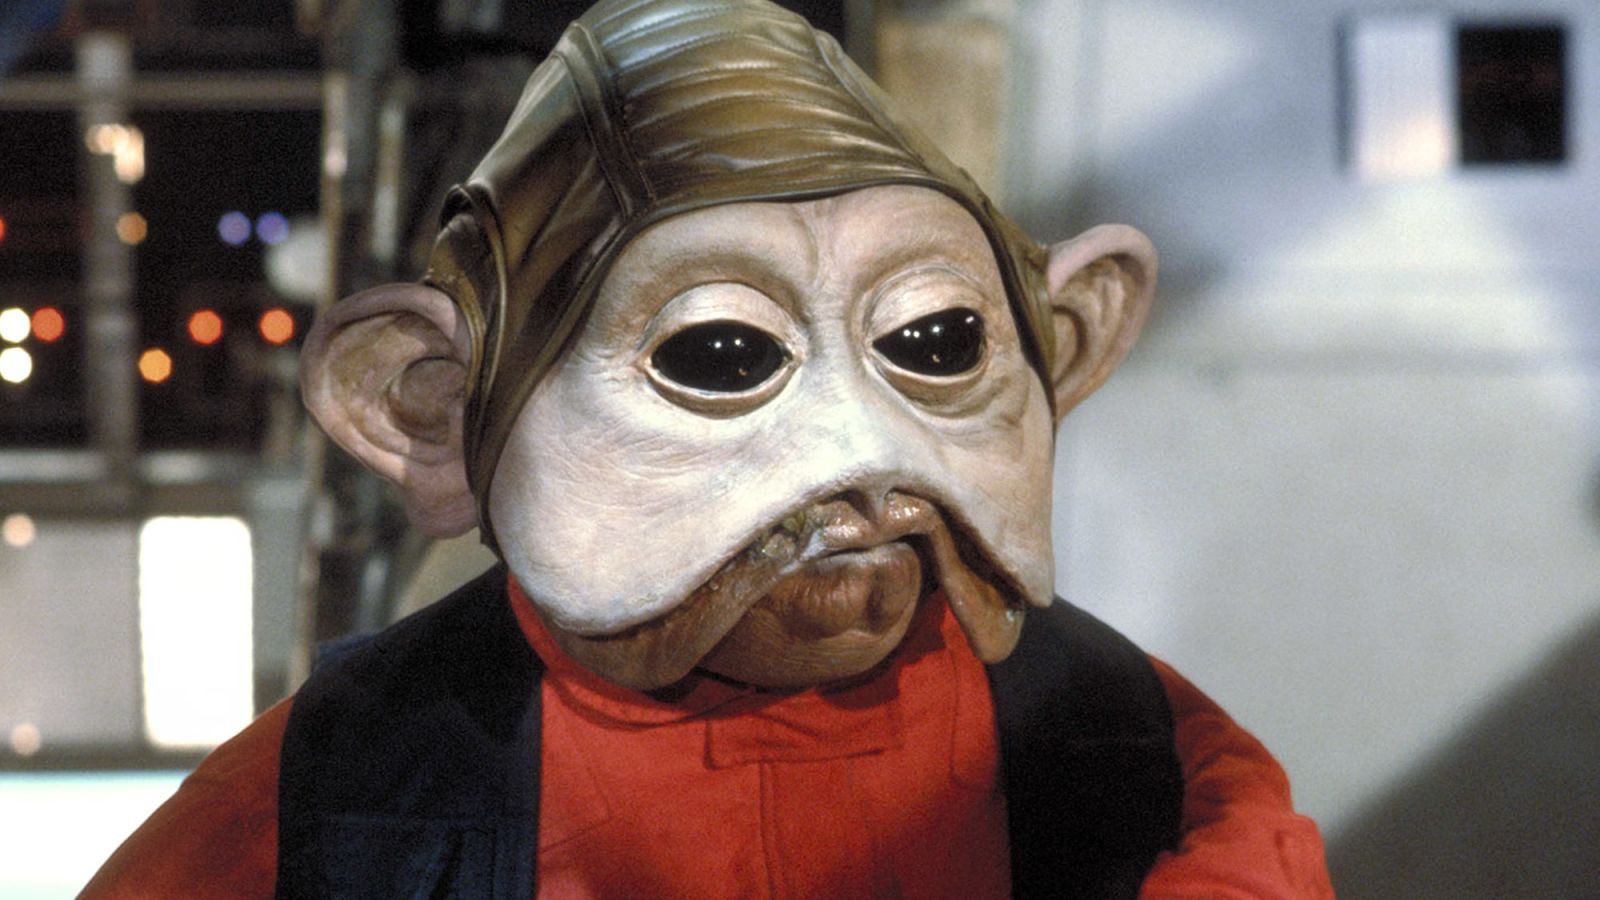 New 'Star Wars' Film Once Again Disappoints Die-Hard Nien Nunb Fans https://t.co/lhs7iIpWDi https://t.co/pv6cmQhoue